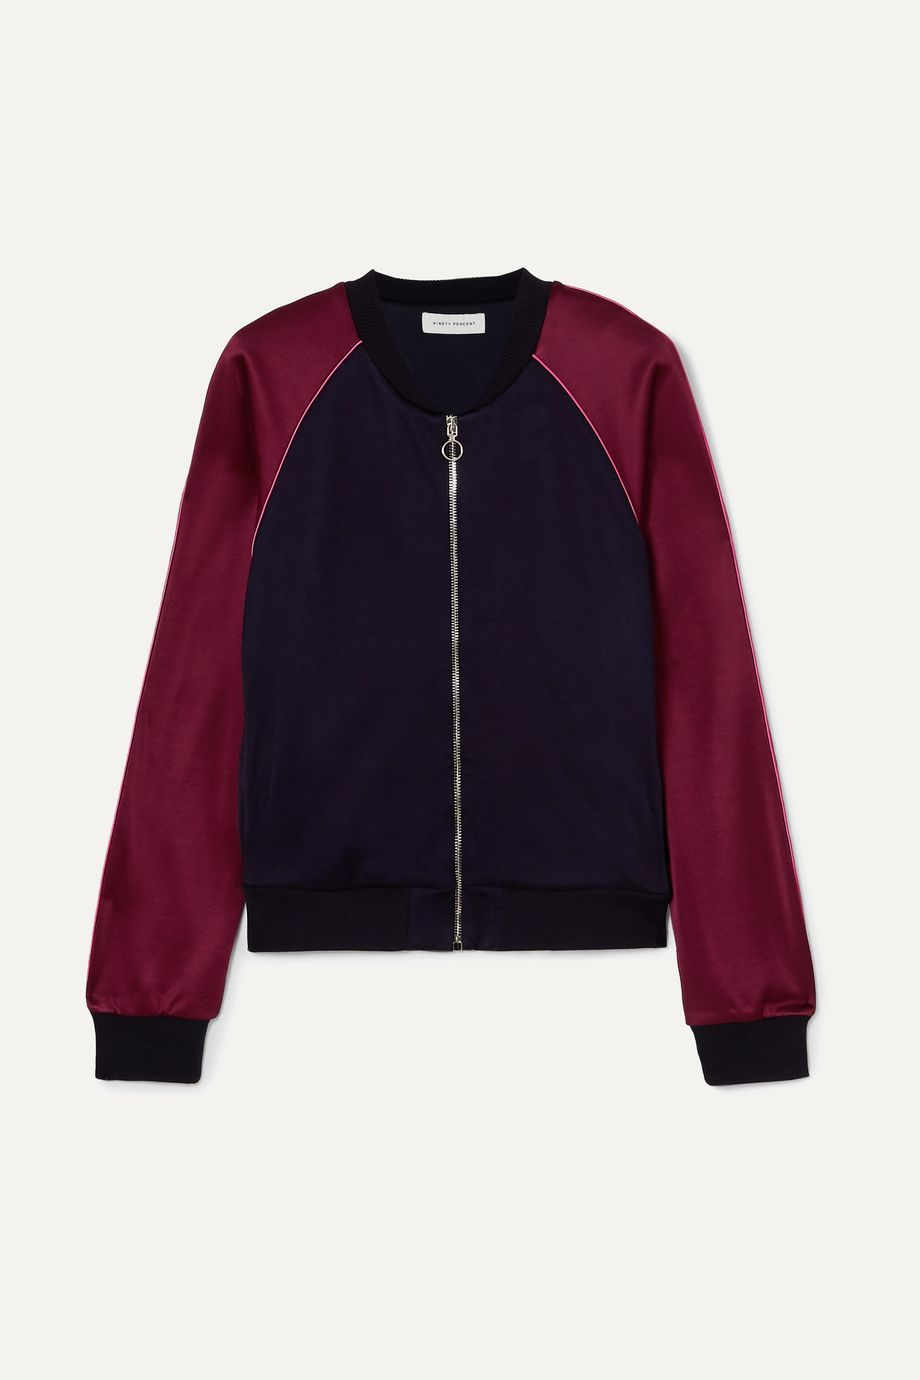 Ninety Percent Two-tone satin-jersey bomber jacket